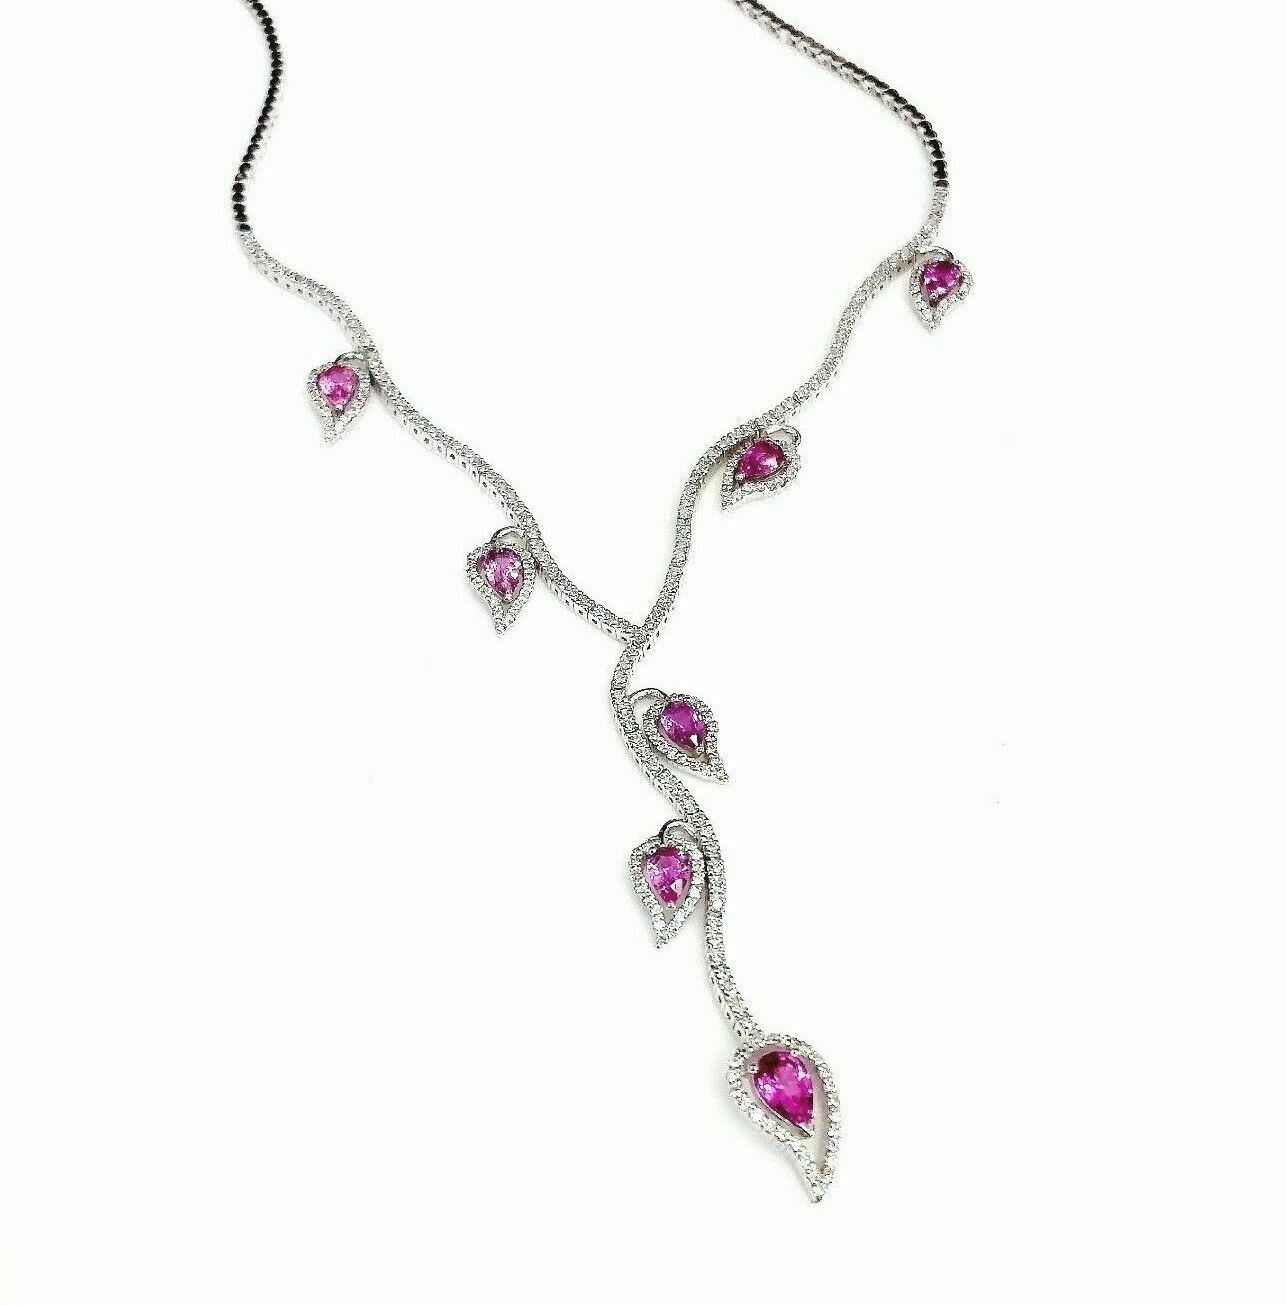 7.40 Carats Custom Made Pink Sapphire and Diamond Necklace 18K White Gold